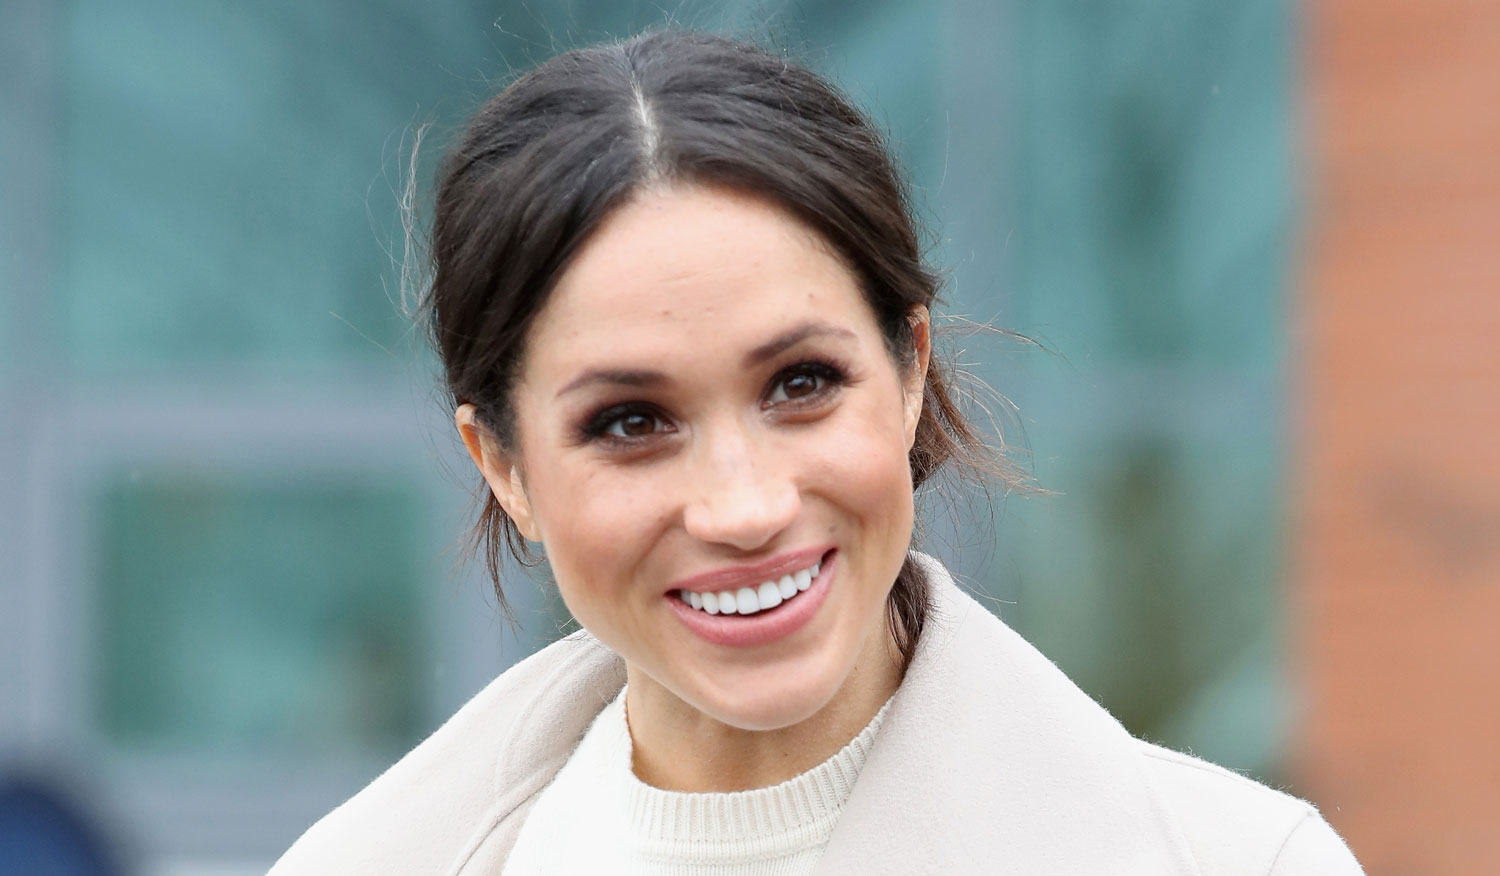 Meghan Markle's Ex-Husband Trevor Engelson Is Engaged ...